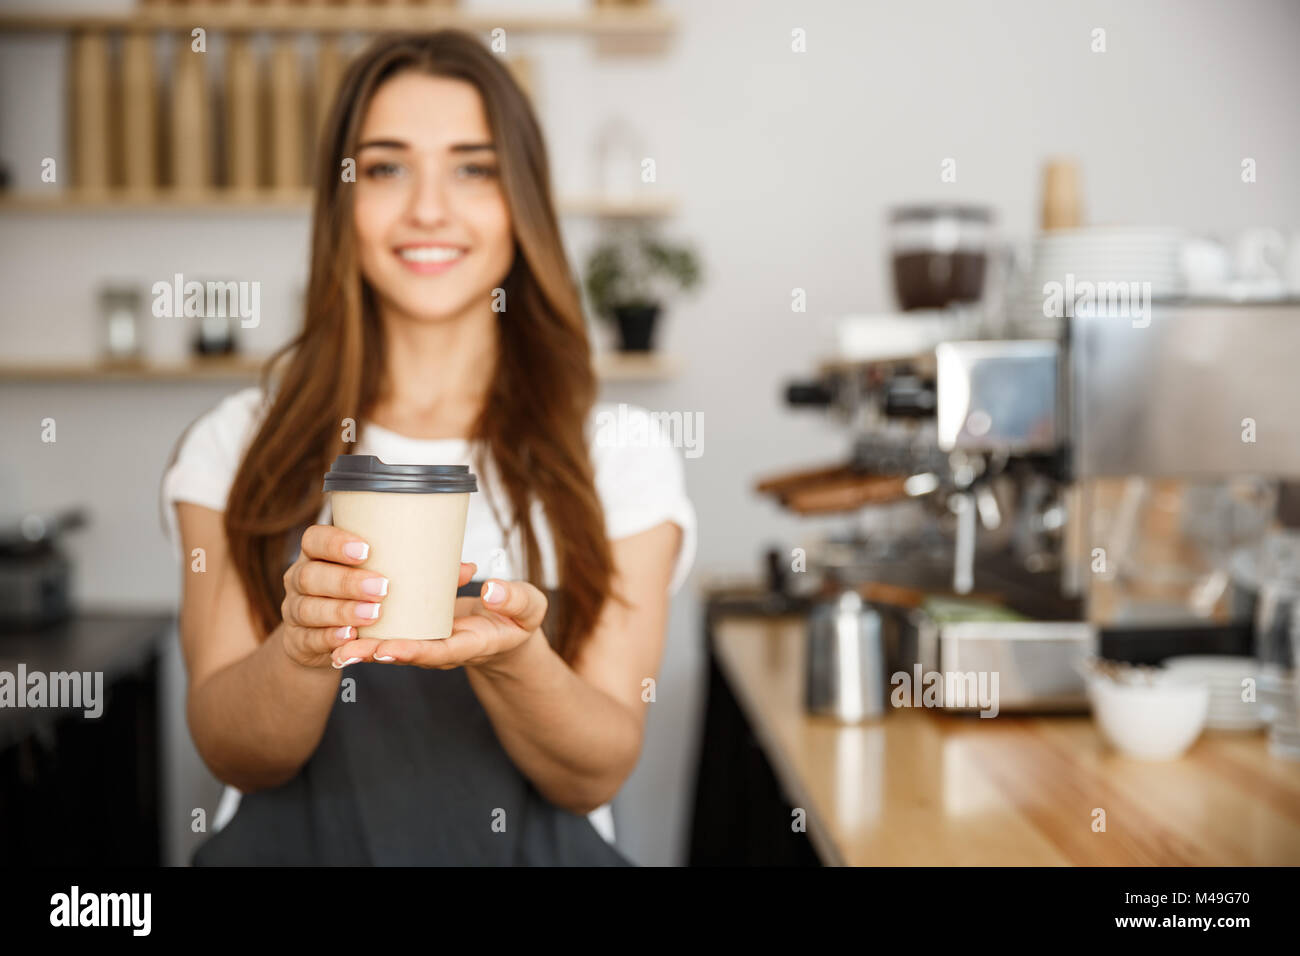 Coffee Business Concept - Beautiful Caucasian lady smiling at camera offers disposable take away hot coffee at the - Stock Image